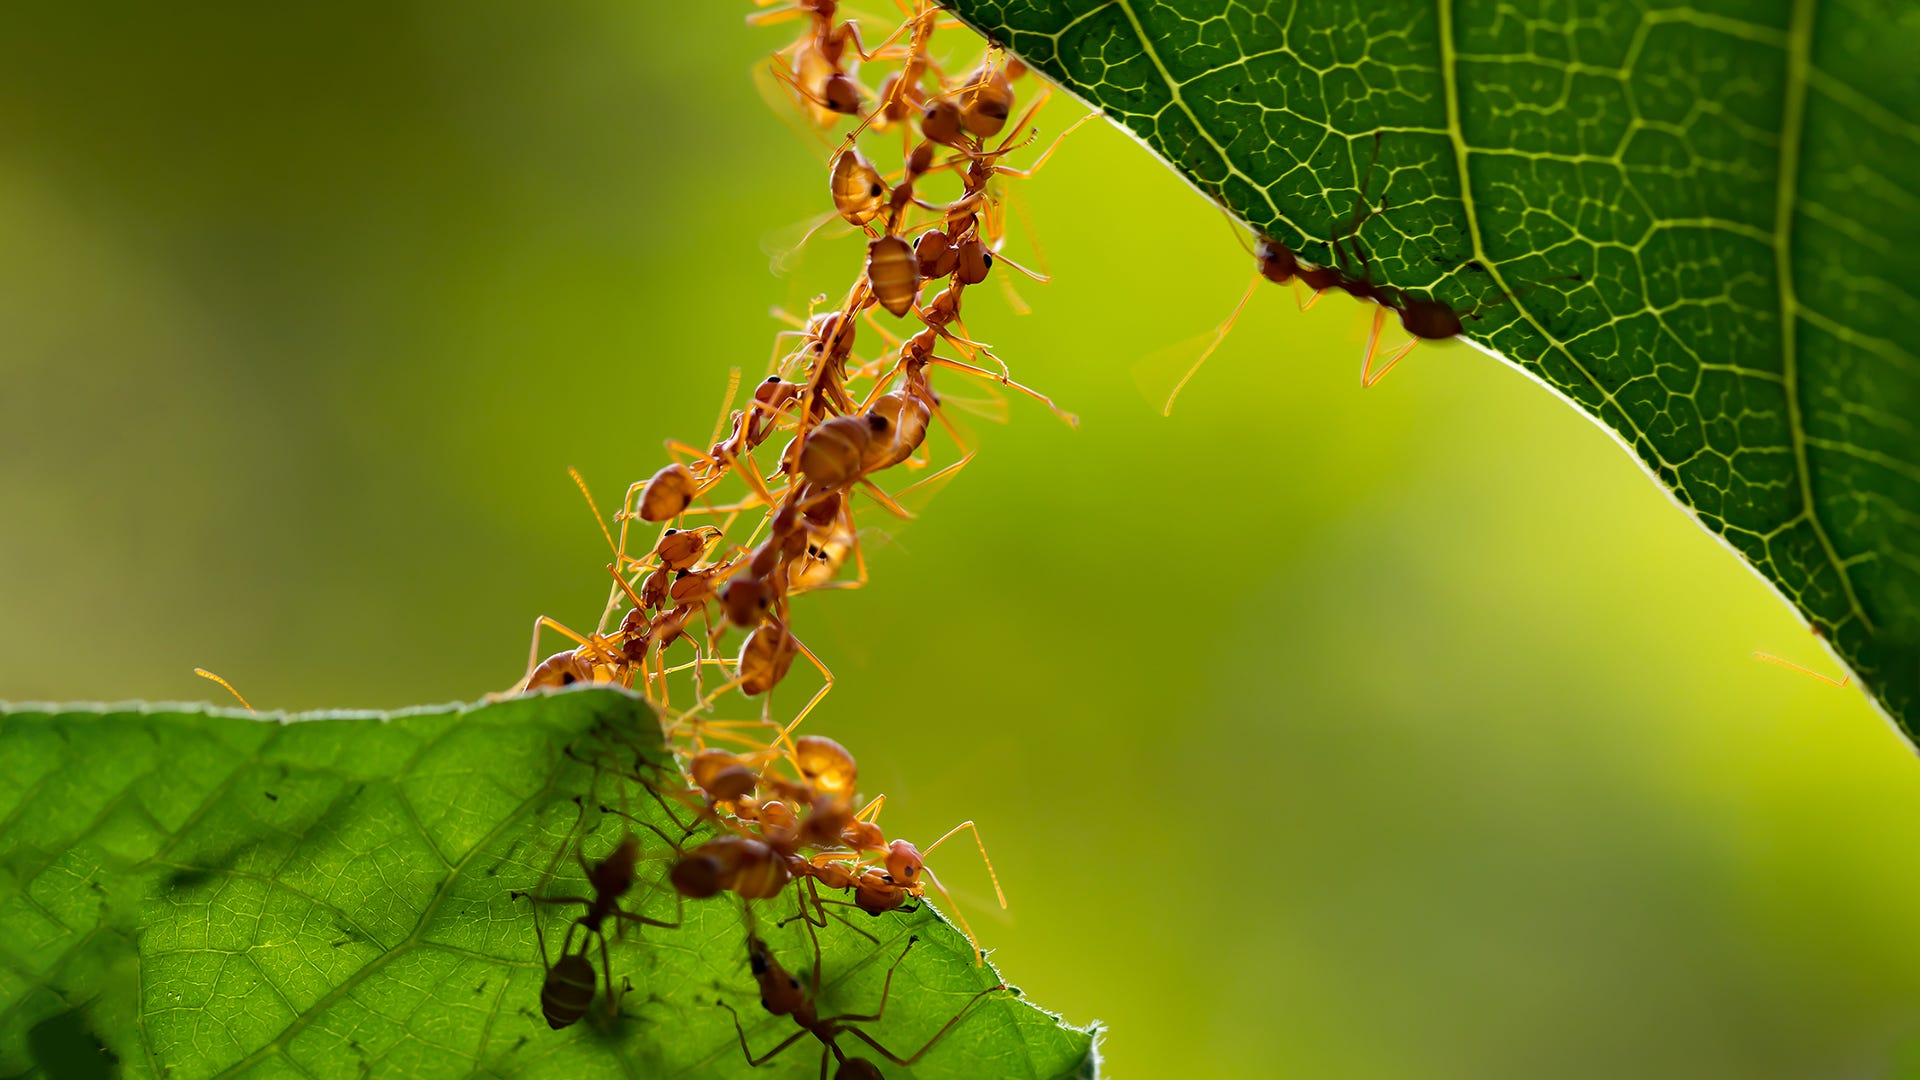 Surviving Spring with TERRO® - How to Get Rid of Ants, Wasps, Spiders and Other Insects